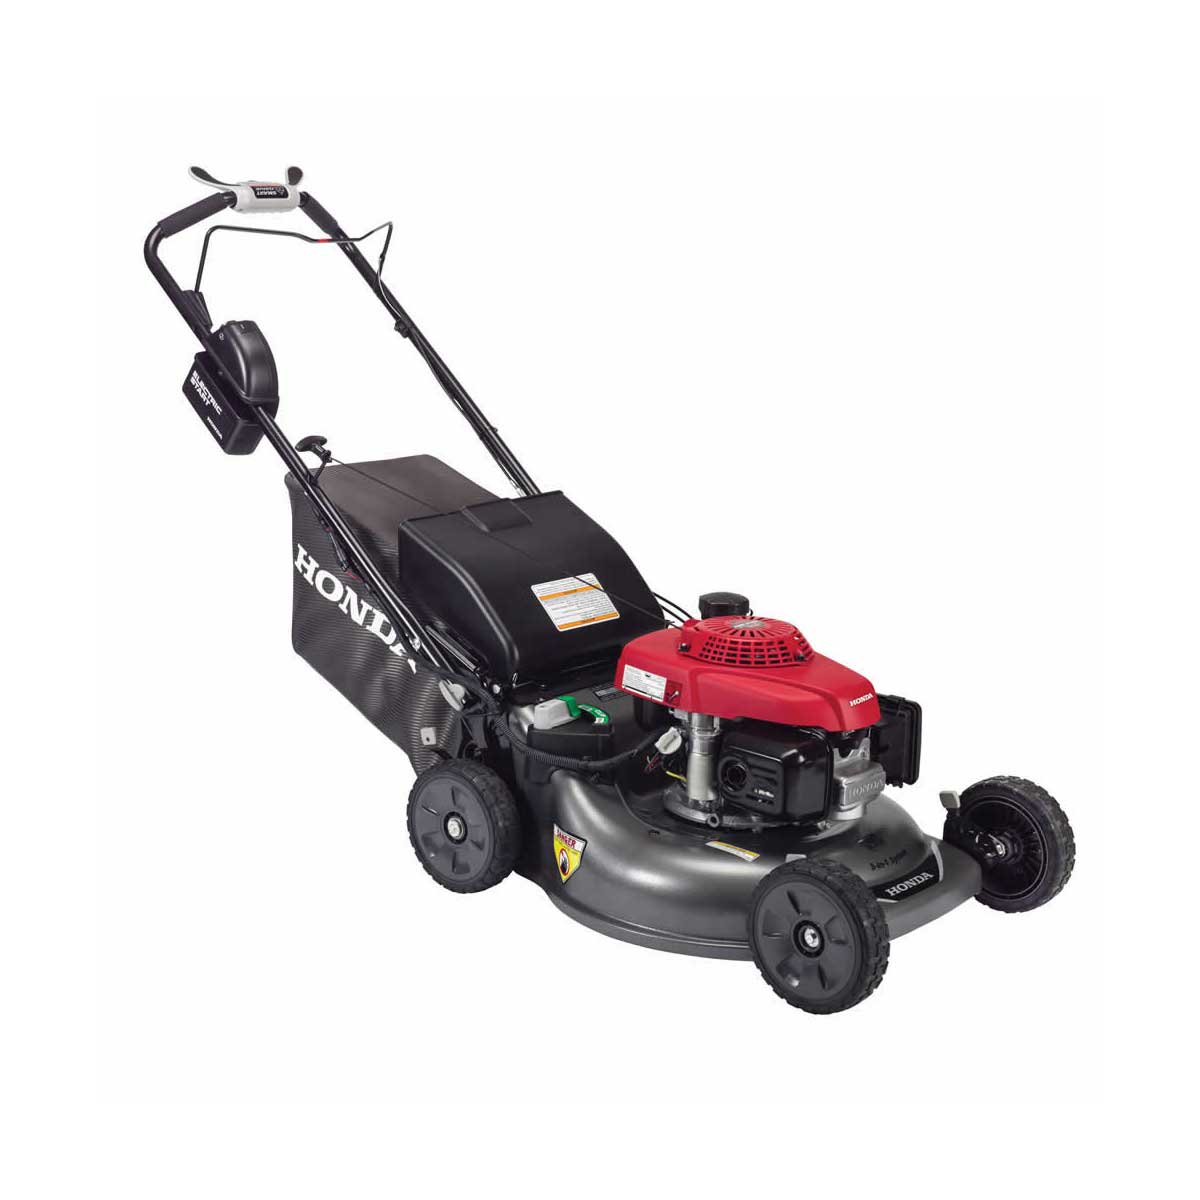 Honda Lawnmower HRR216VLA